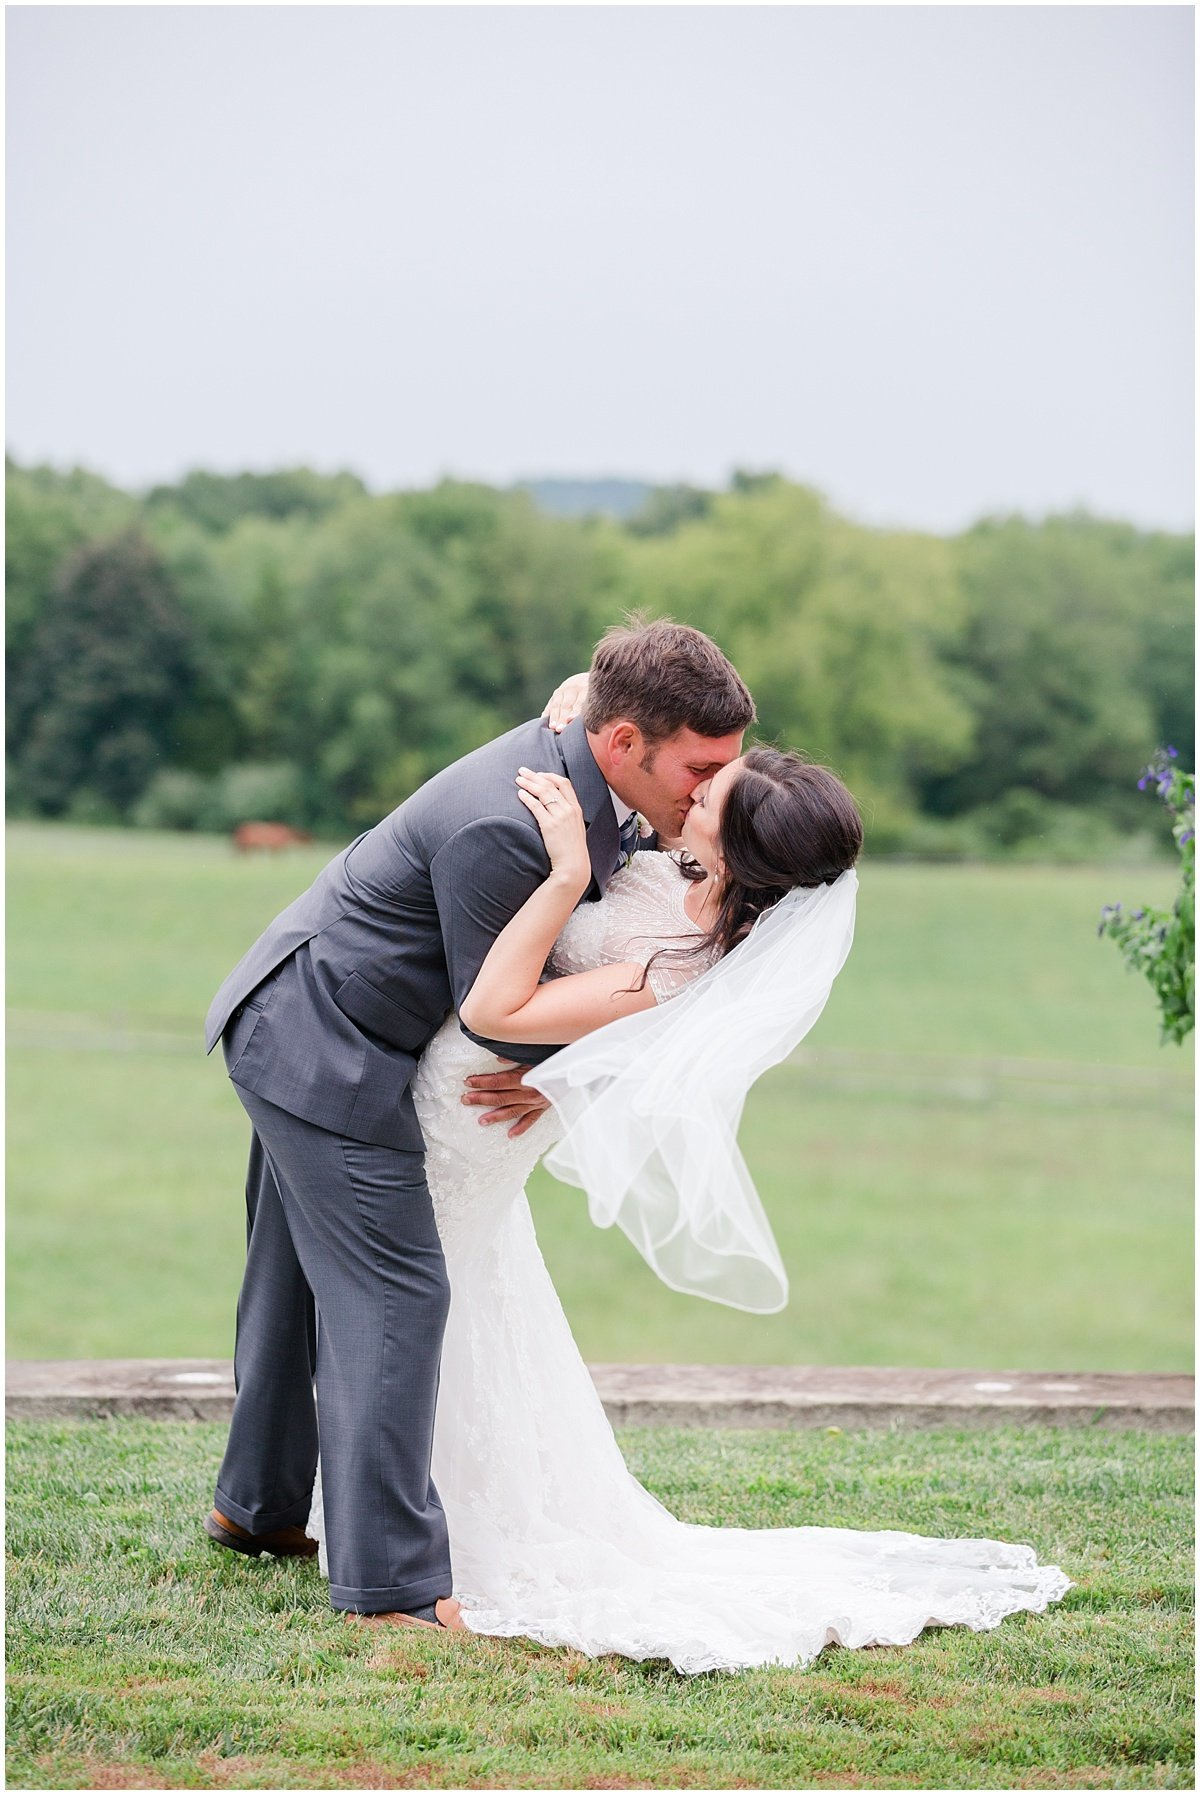 Lauren-Kearns-Brecknock-Hall-Long-Island-Wedding_0350